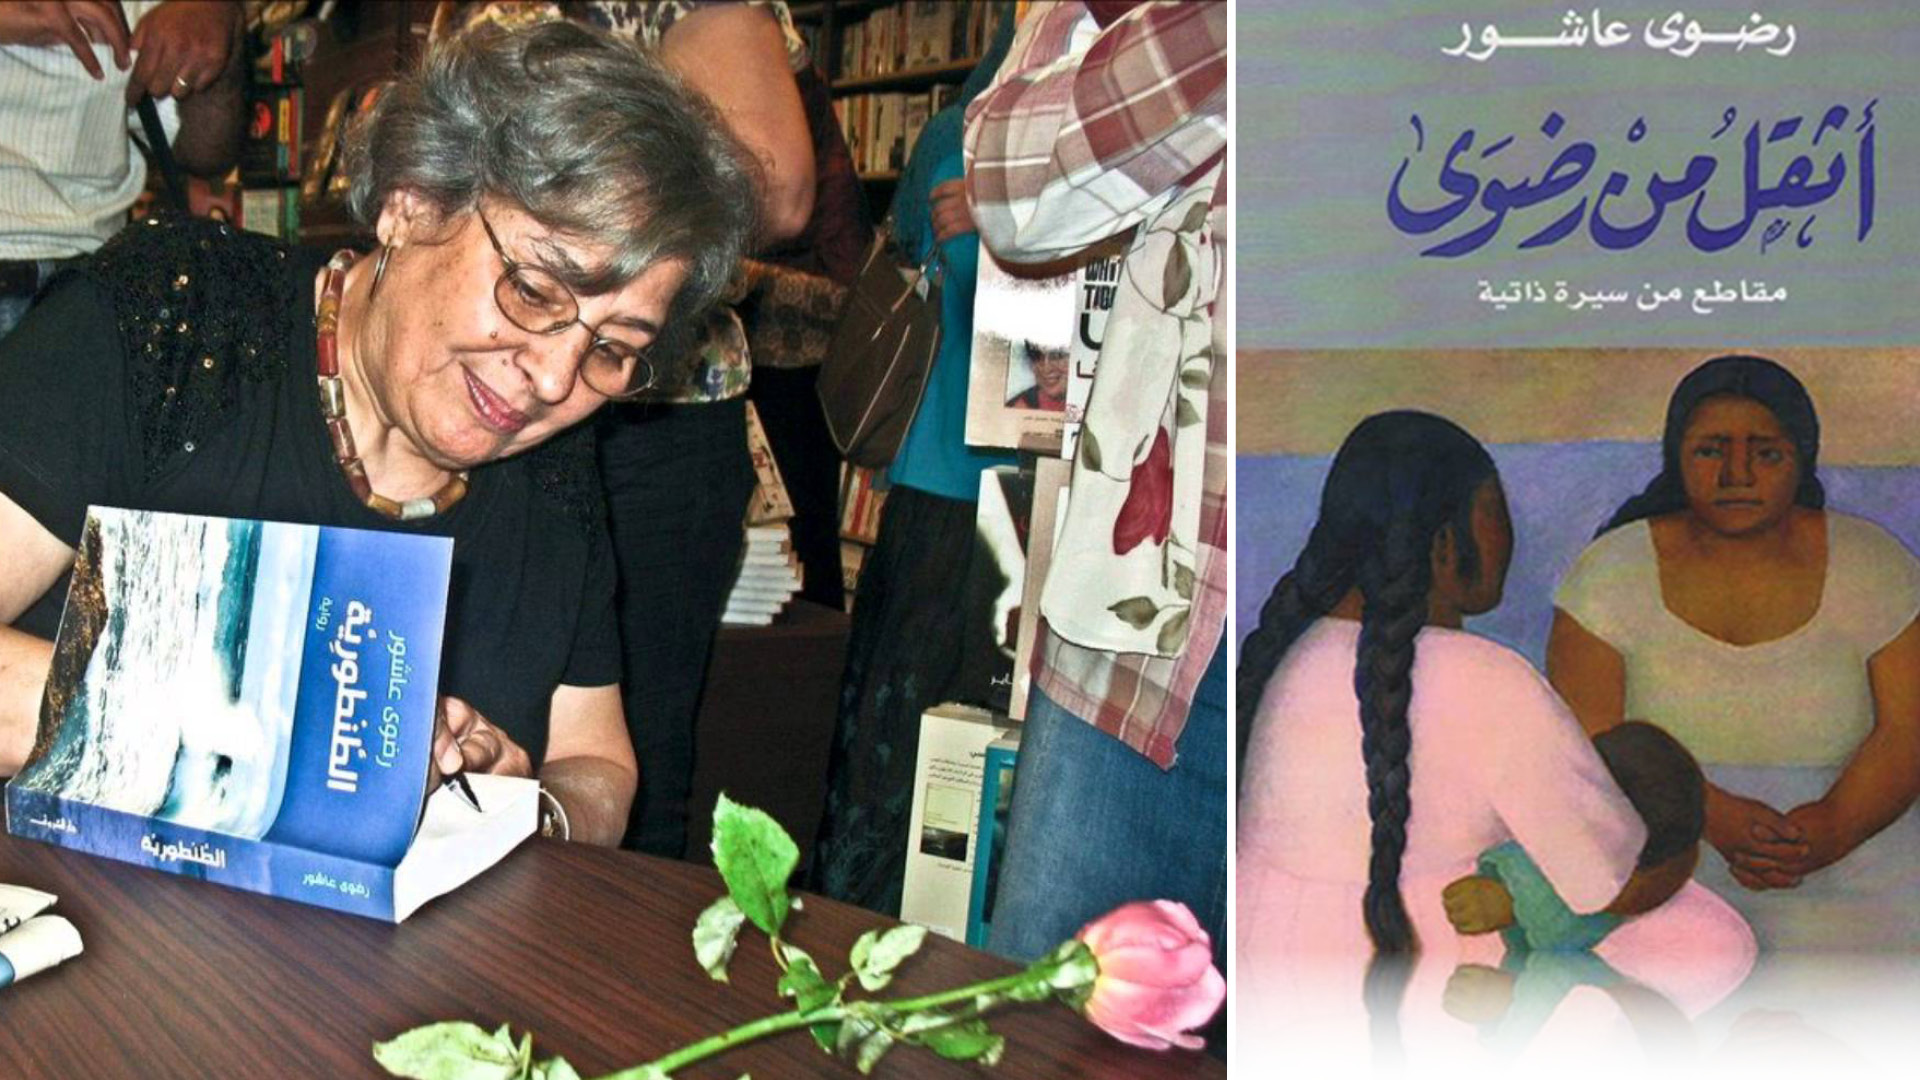 One of the twentieth century's great love stories came to an end with the passing of Radwa Ashour. The novelist's relationship to her husband, poet Mourid Barghouti, has been well documented though